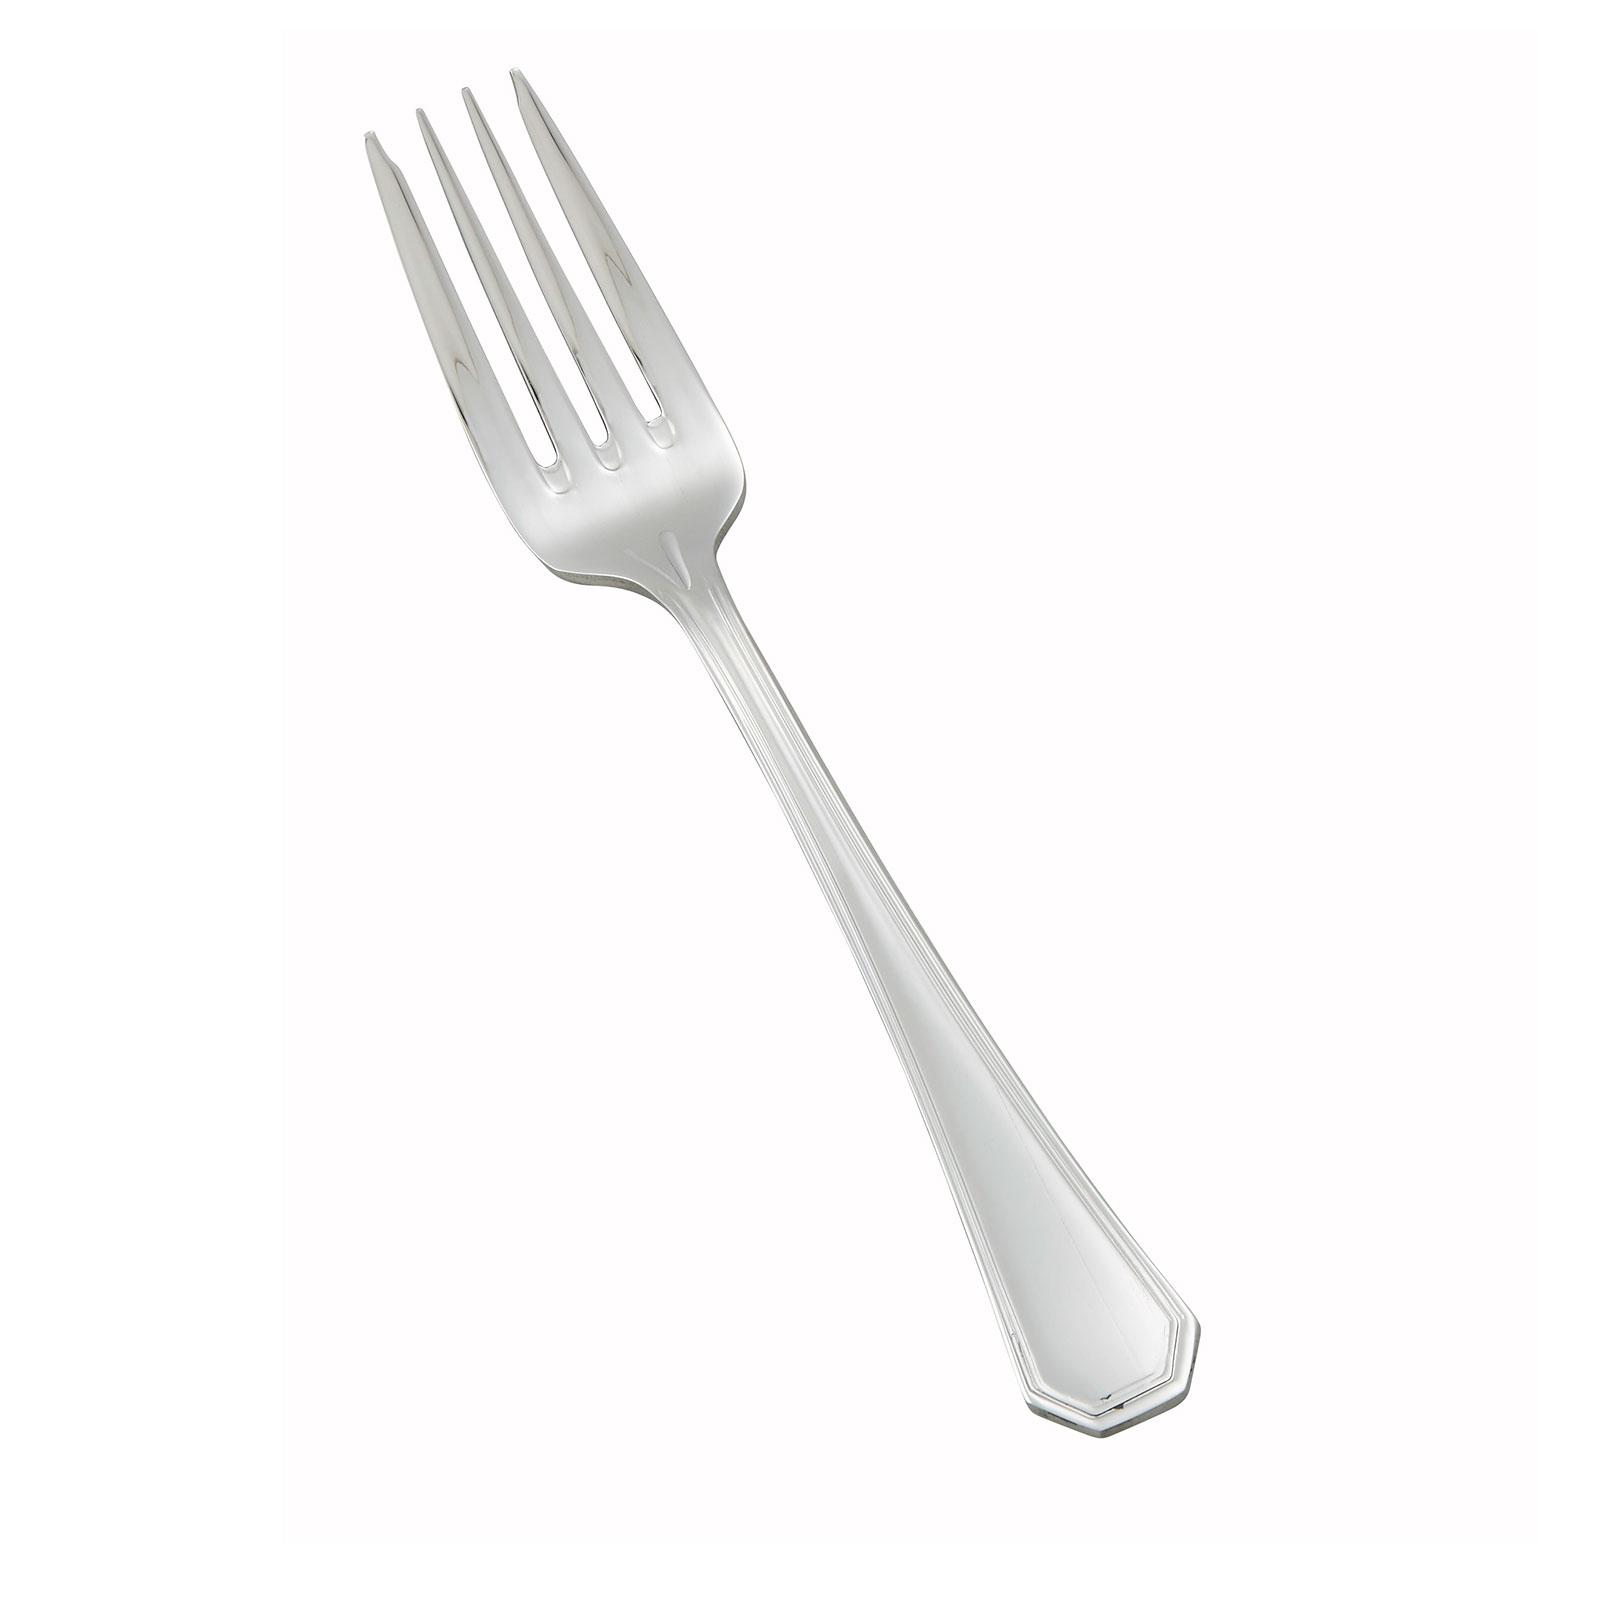 Winco 0035-06 fork, salad